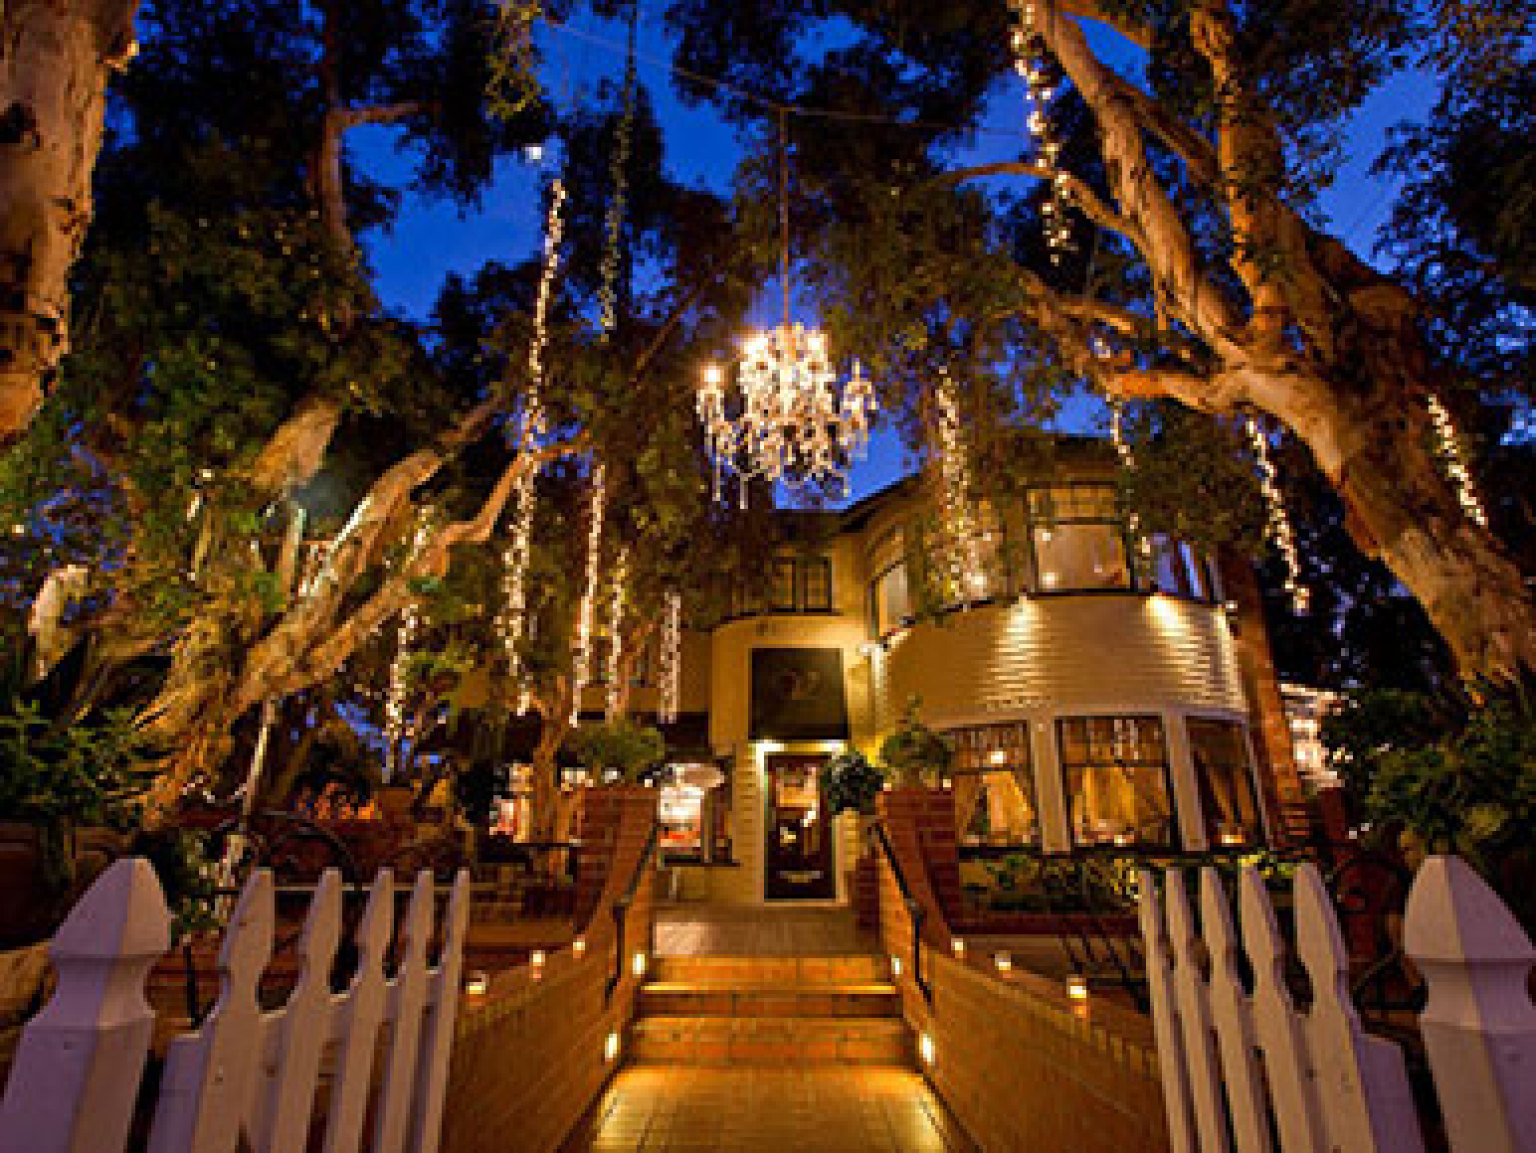 LA Wedding Venues Best Restaurants Museums U0026 Gardens (PHOTOS) | HuffPost